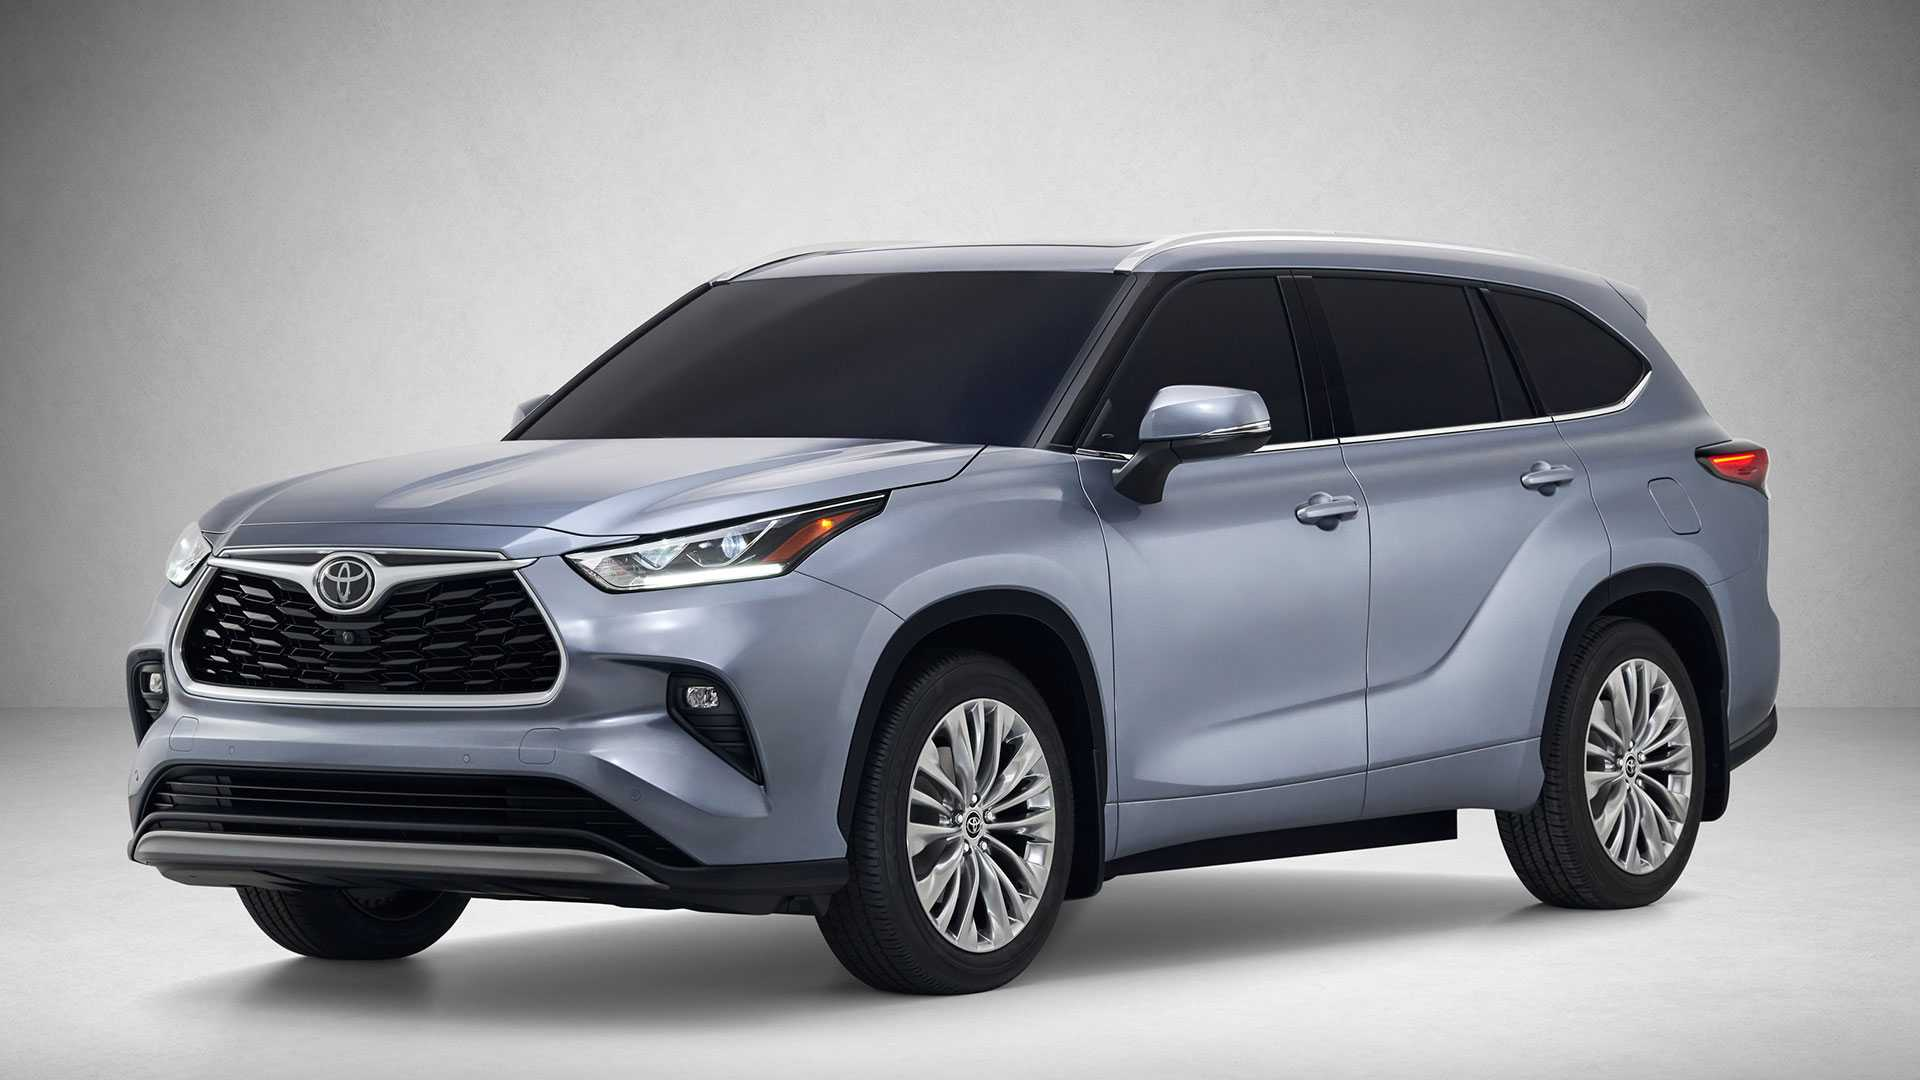 2020 Toyota Highlander Arrives With $34,600 Price Tag